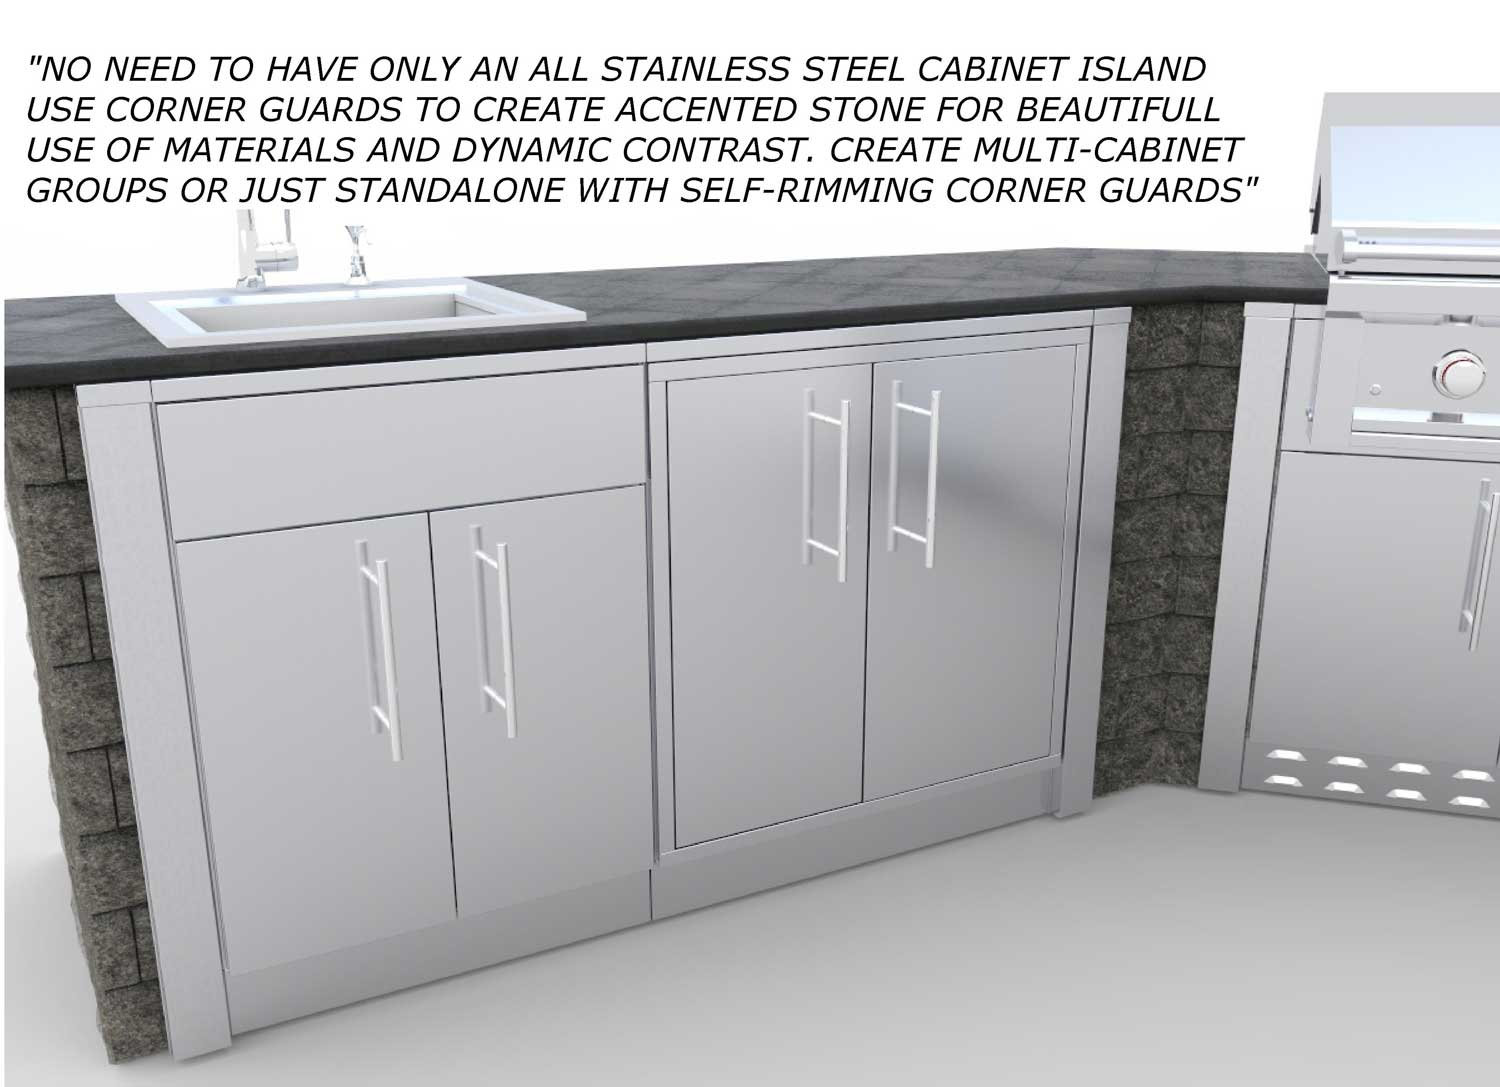 Affordable Stainless Steel Base Cabinets Stainless Steel Stainless Steel Cabinets Sink Stainless Steel Cabinets Ebay houzz 01 Stainless Steel Cabinets